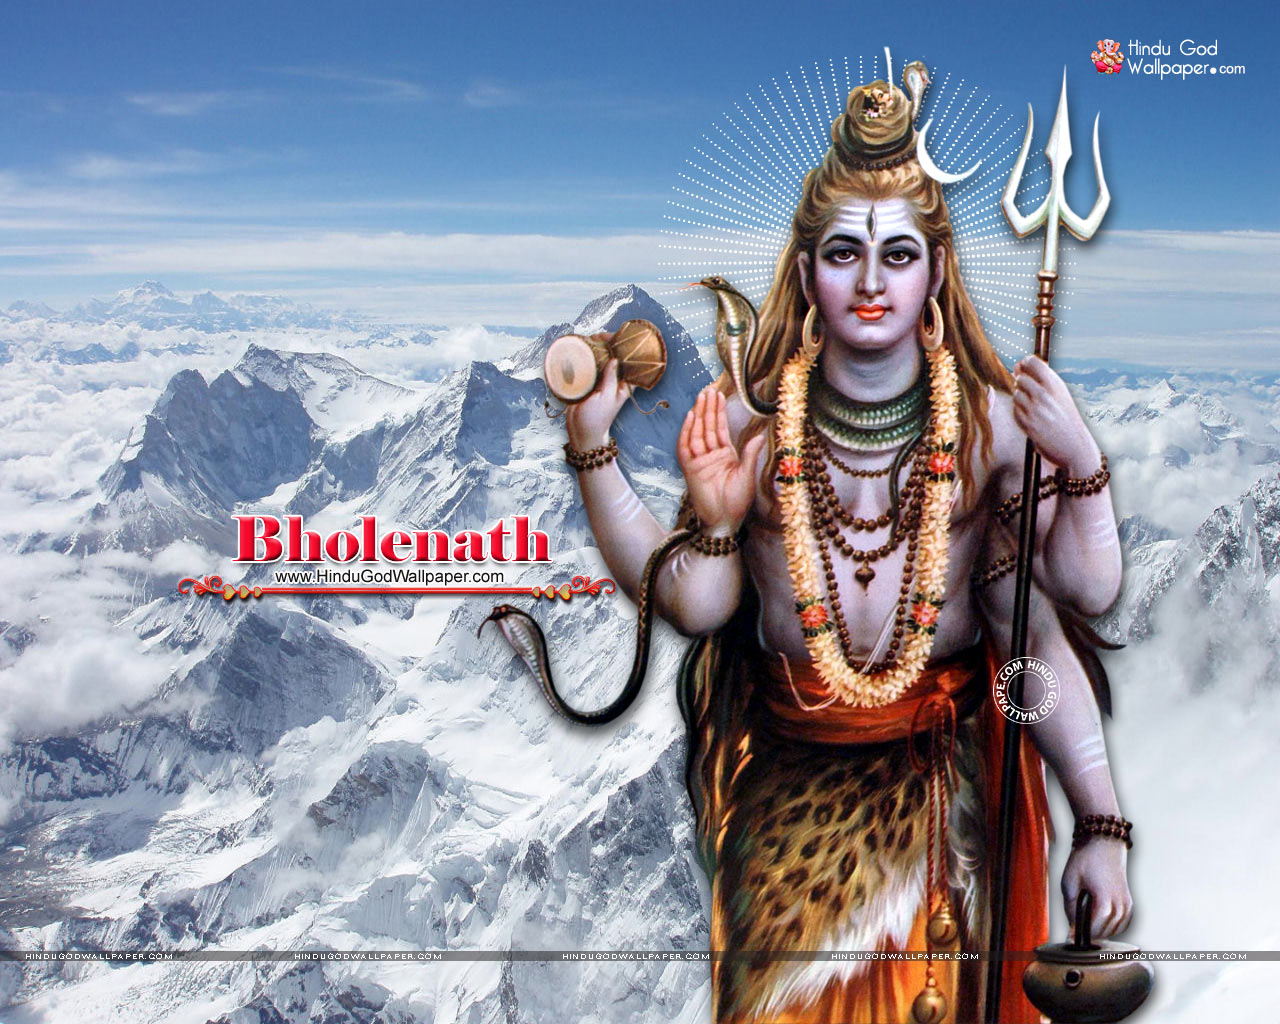 Bholenath Hd Wallpapers Images Photos Free Download